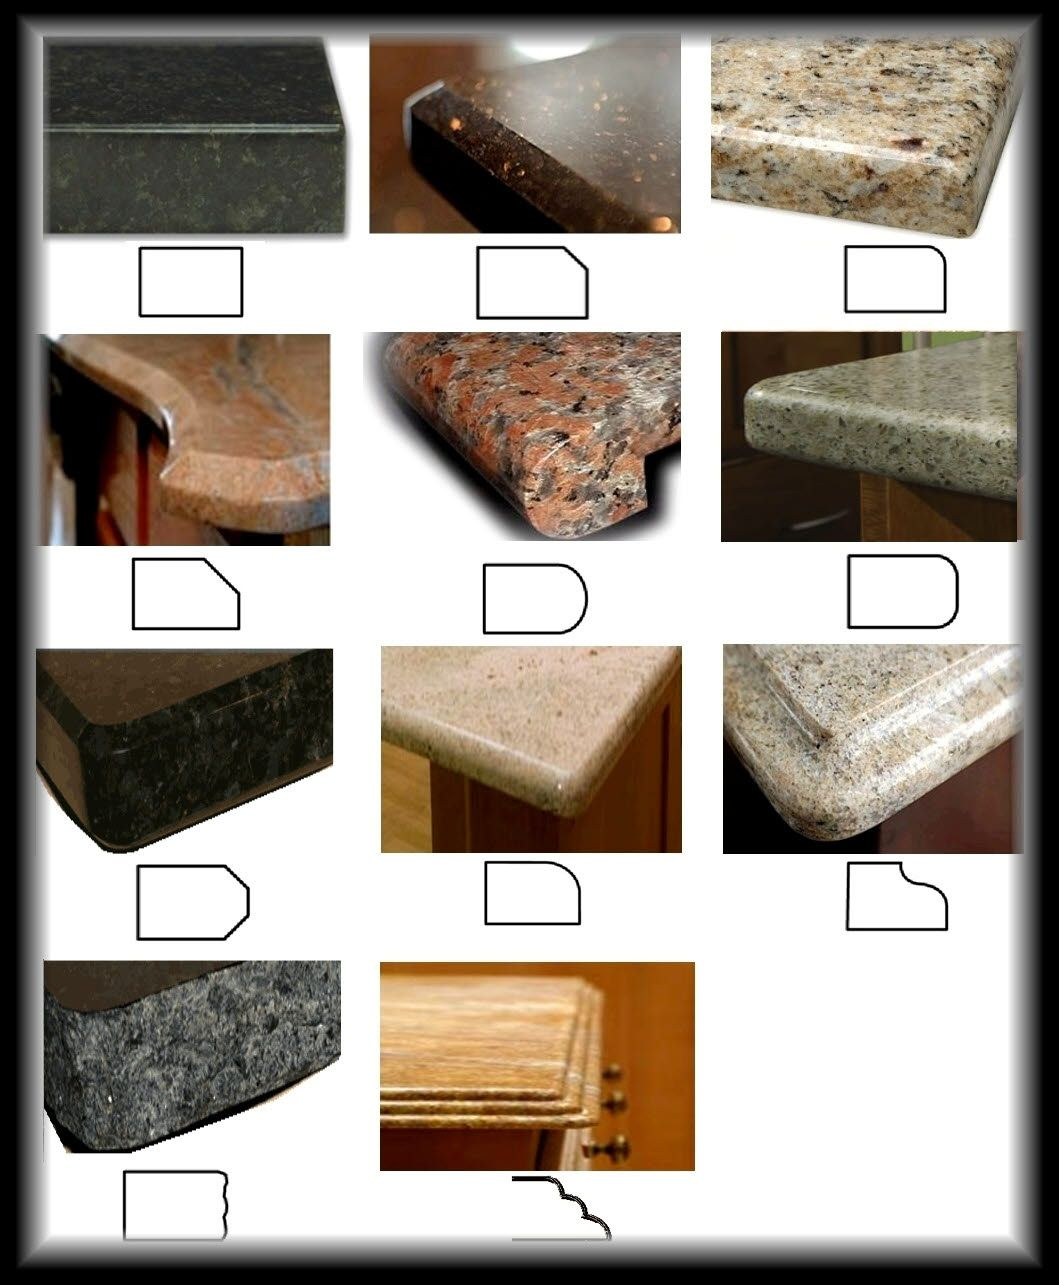 Granite countertops most popular favorite - Find This Pin And More On Stone Countertop Edges